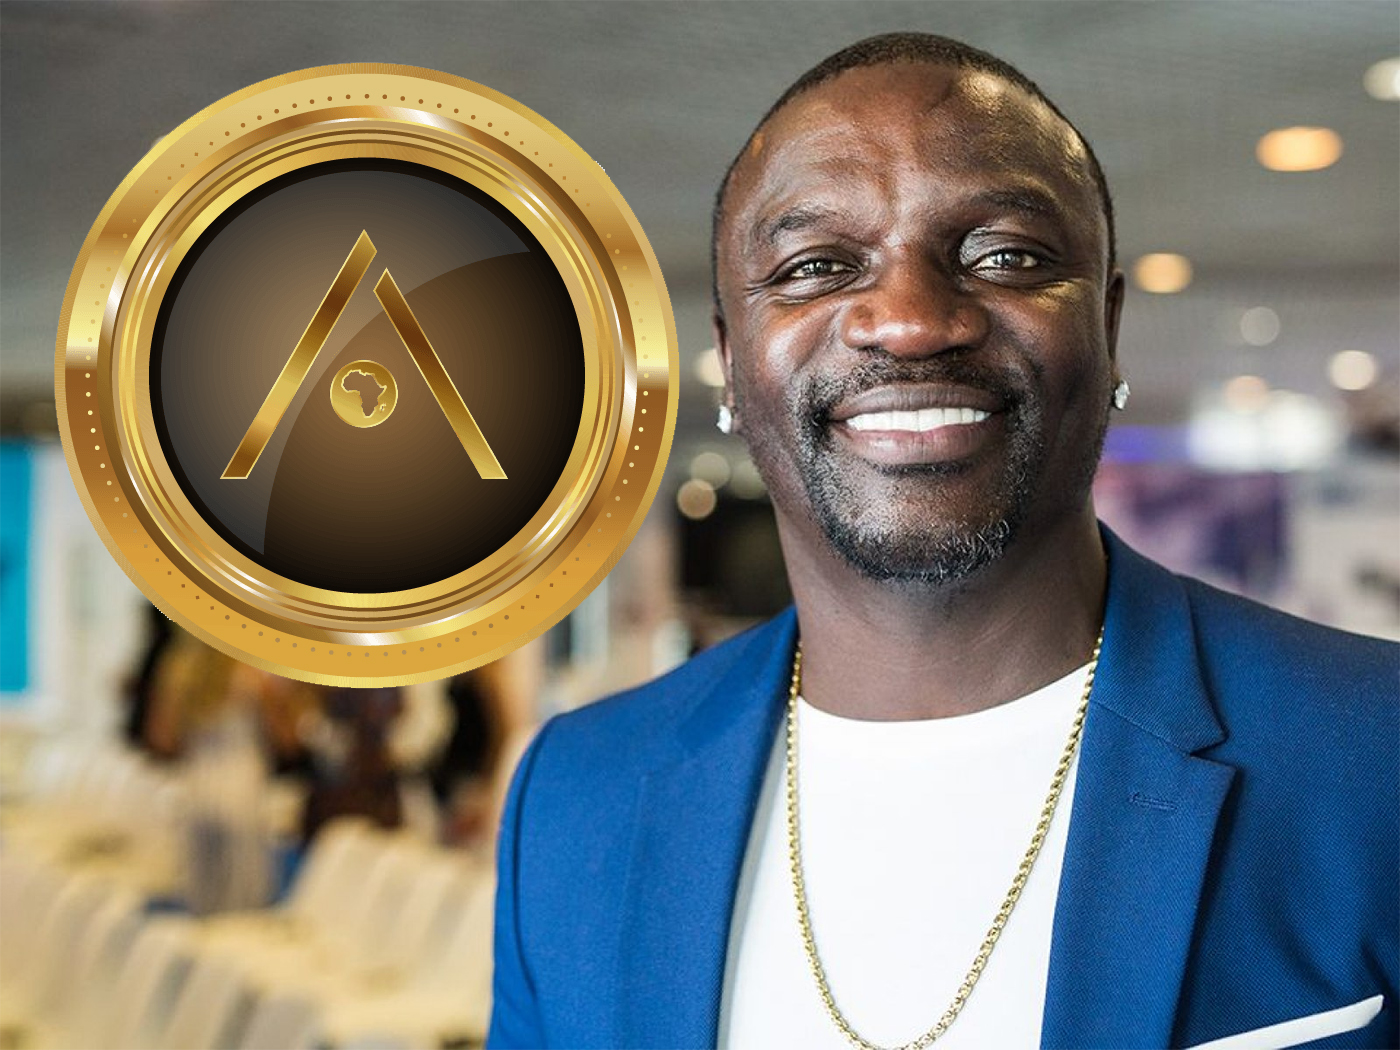 Singer Akon Is Launching a Cryptocurrency Called Akoin